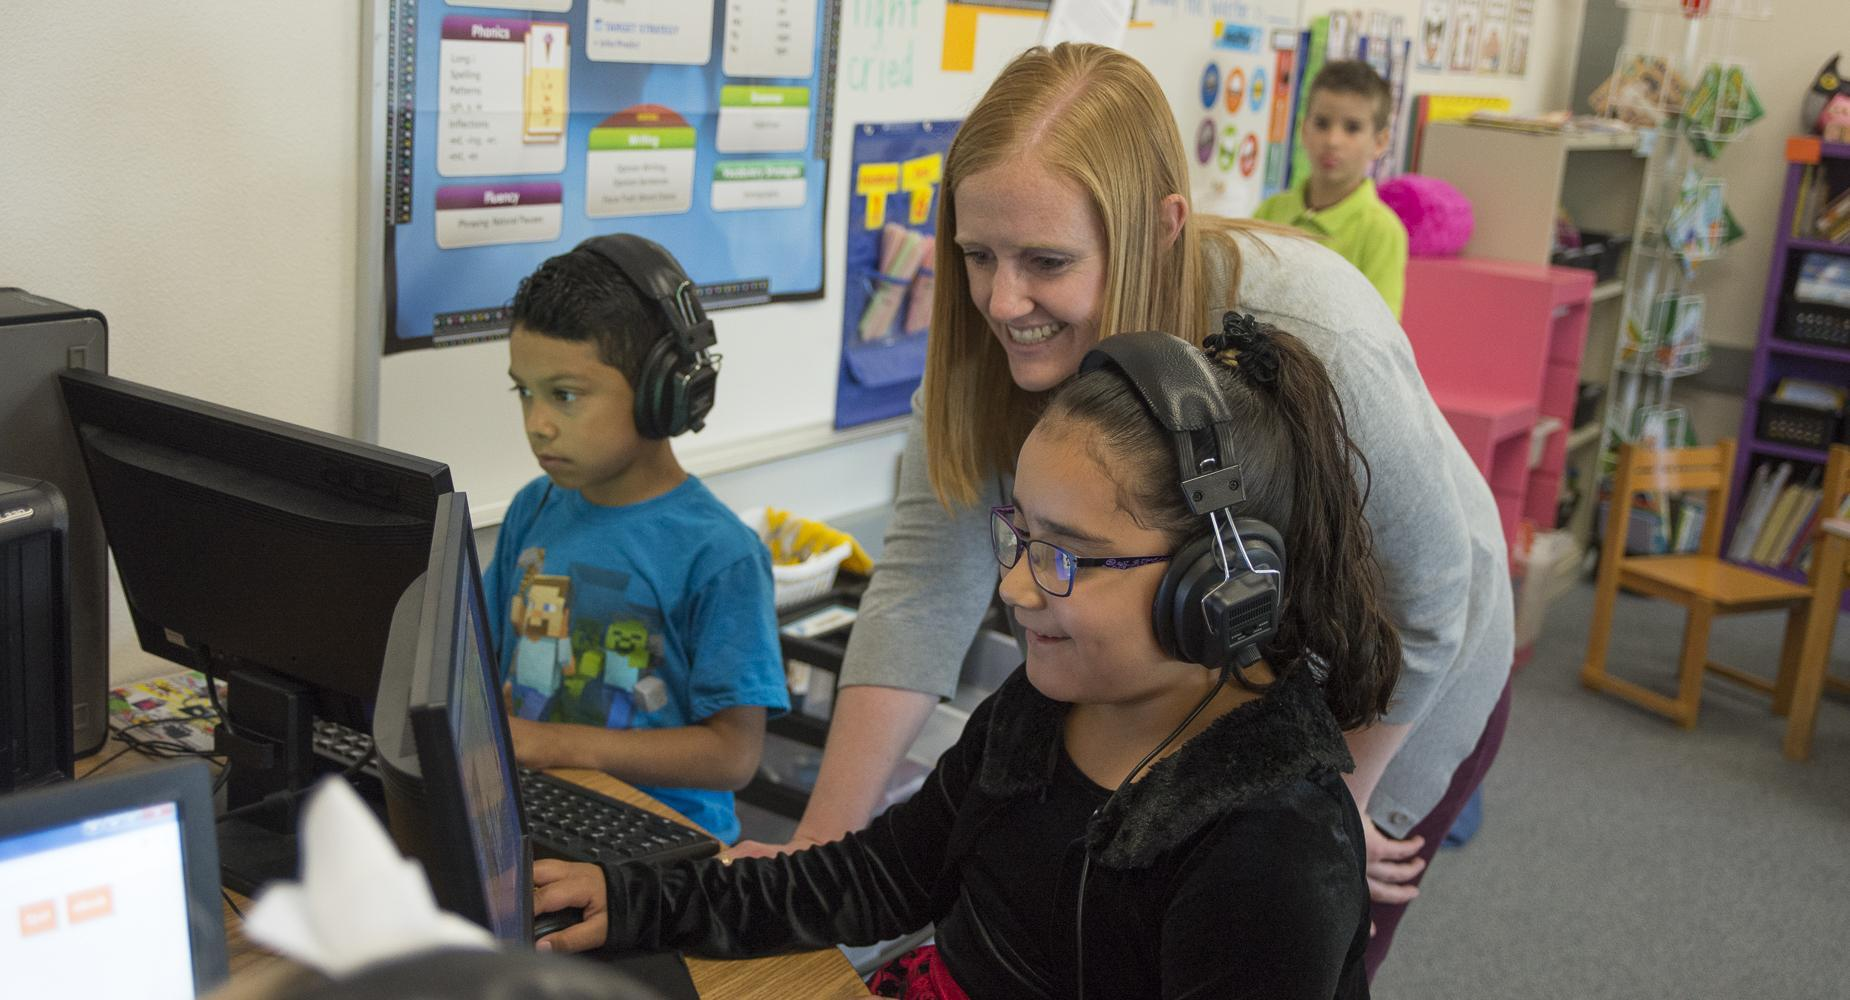 Teacher assists students wearing headphones at the computer.